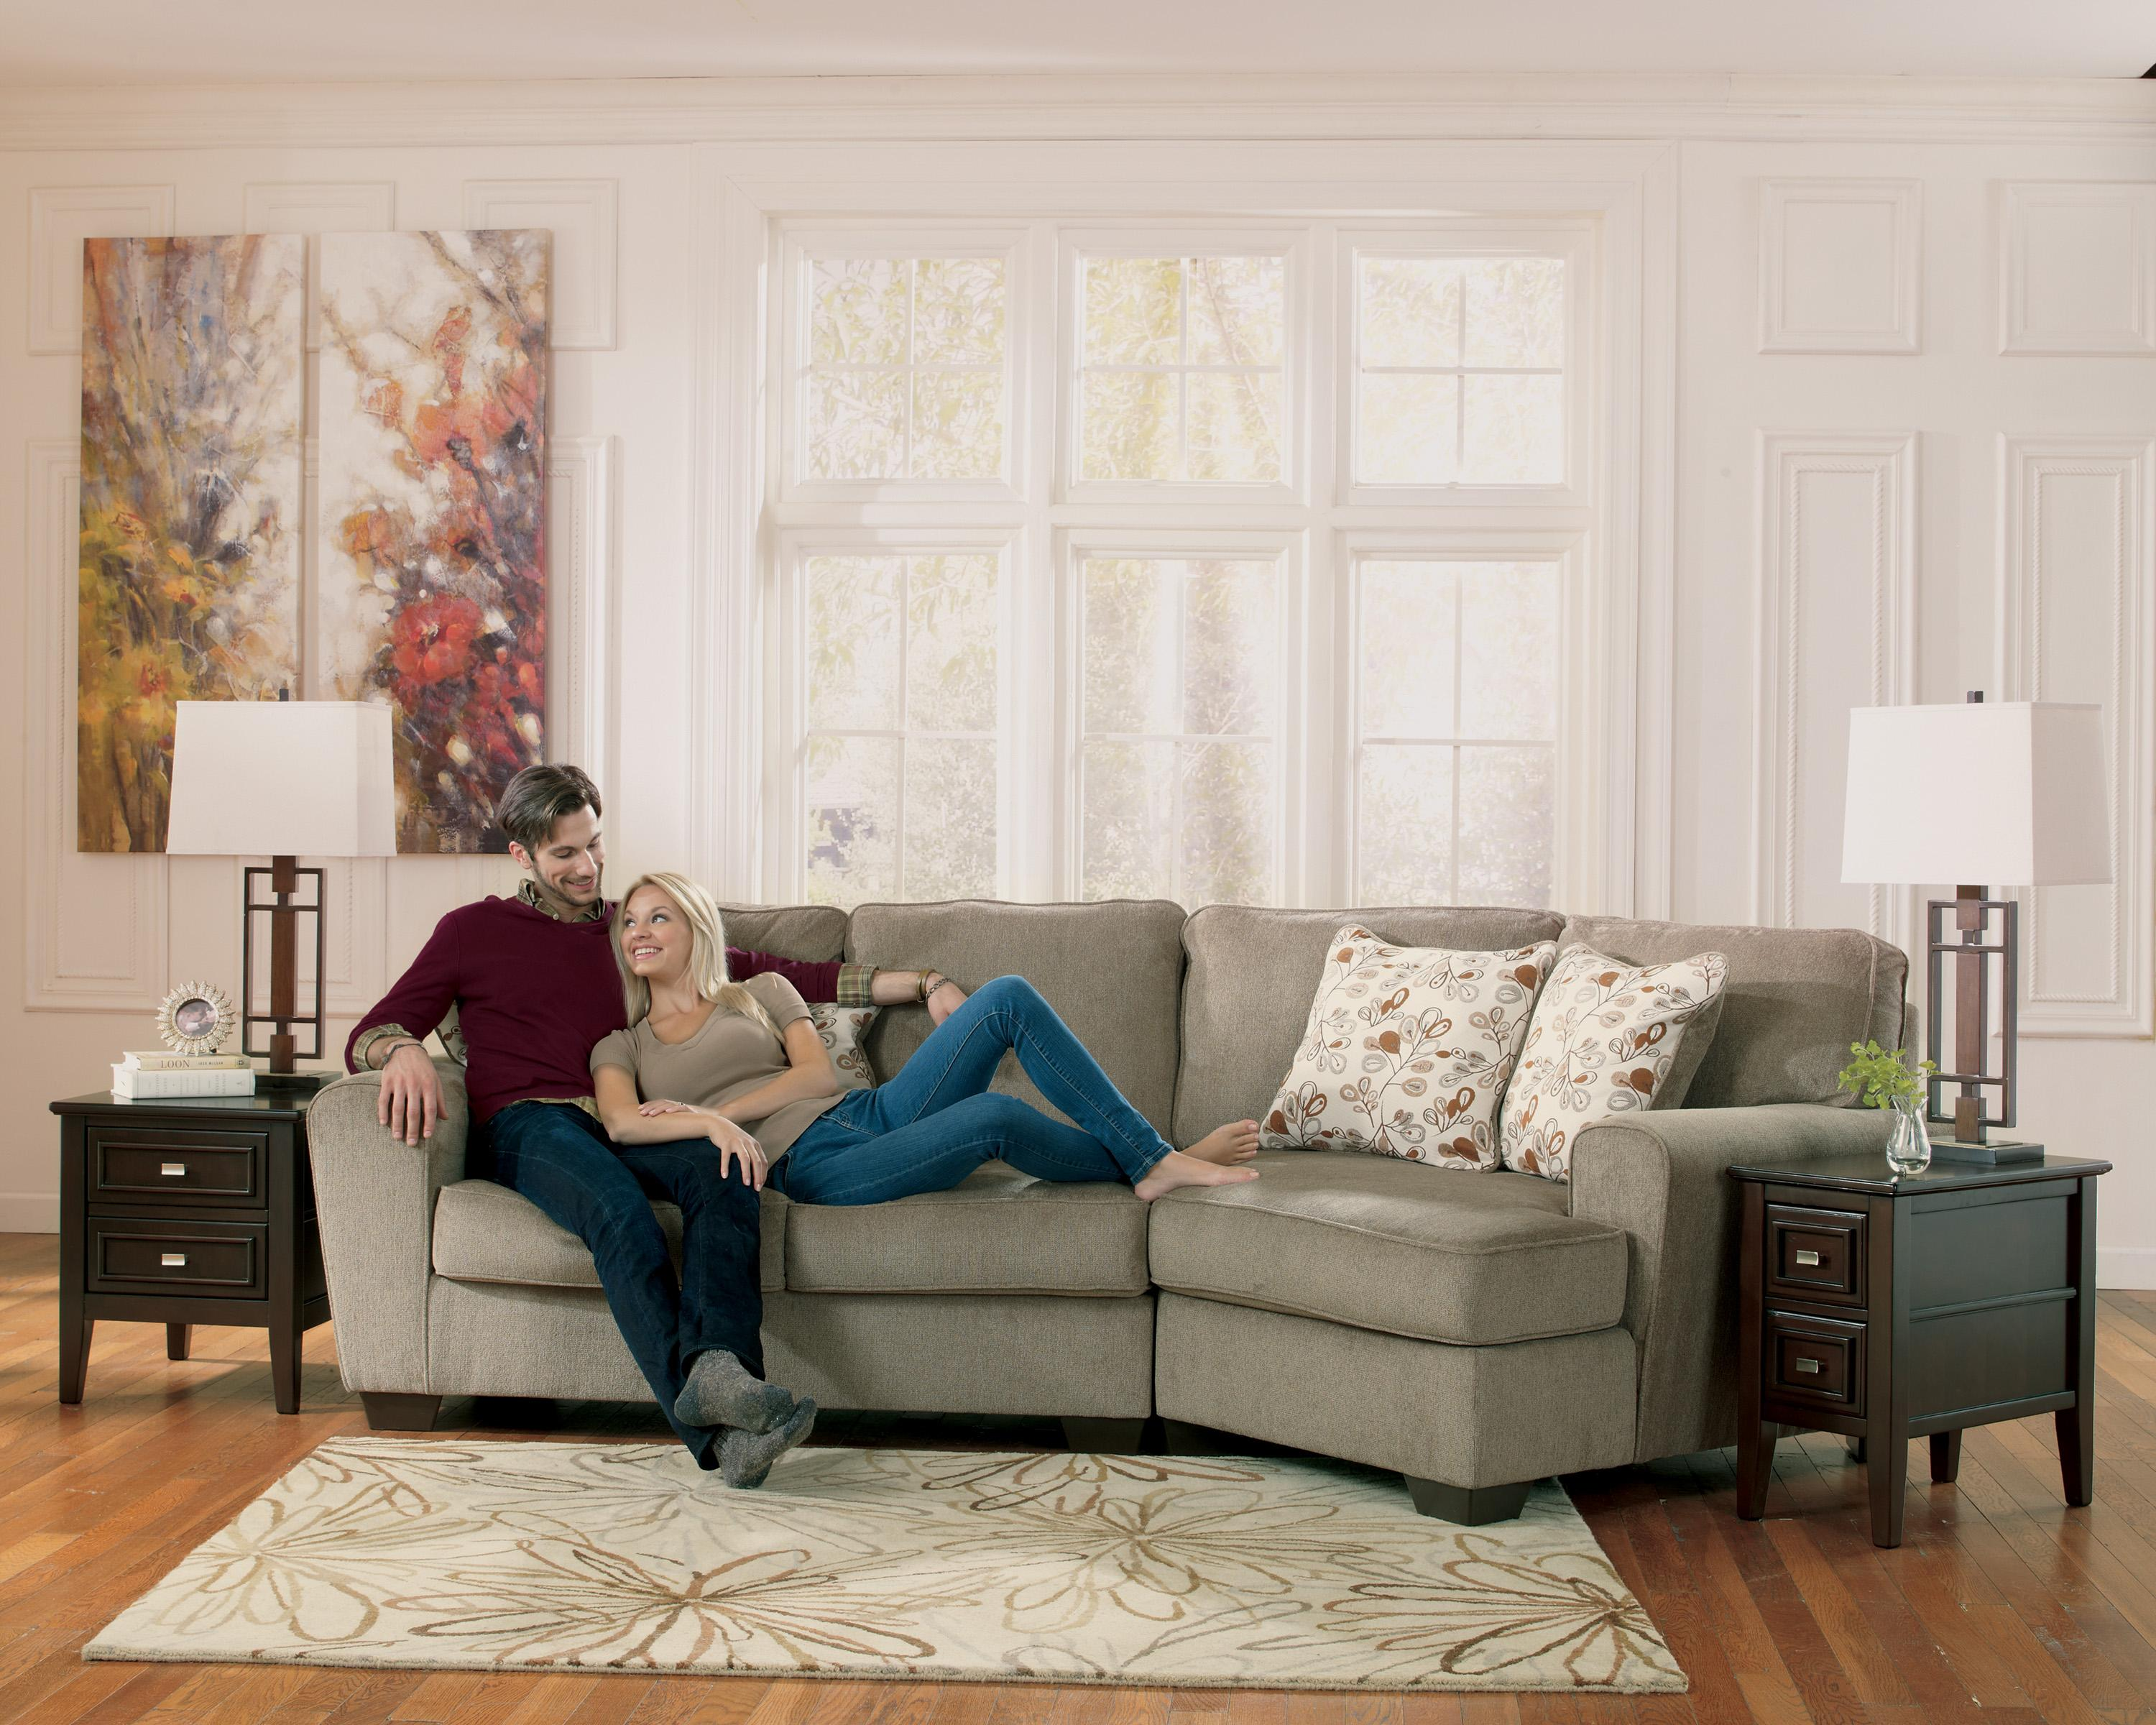 Ashley Furniture Patola Park Patina 2 Piece Sectional With Right Cuddler Del Sol Furniture